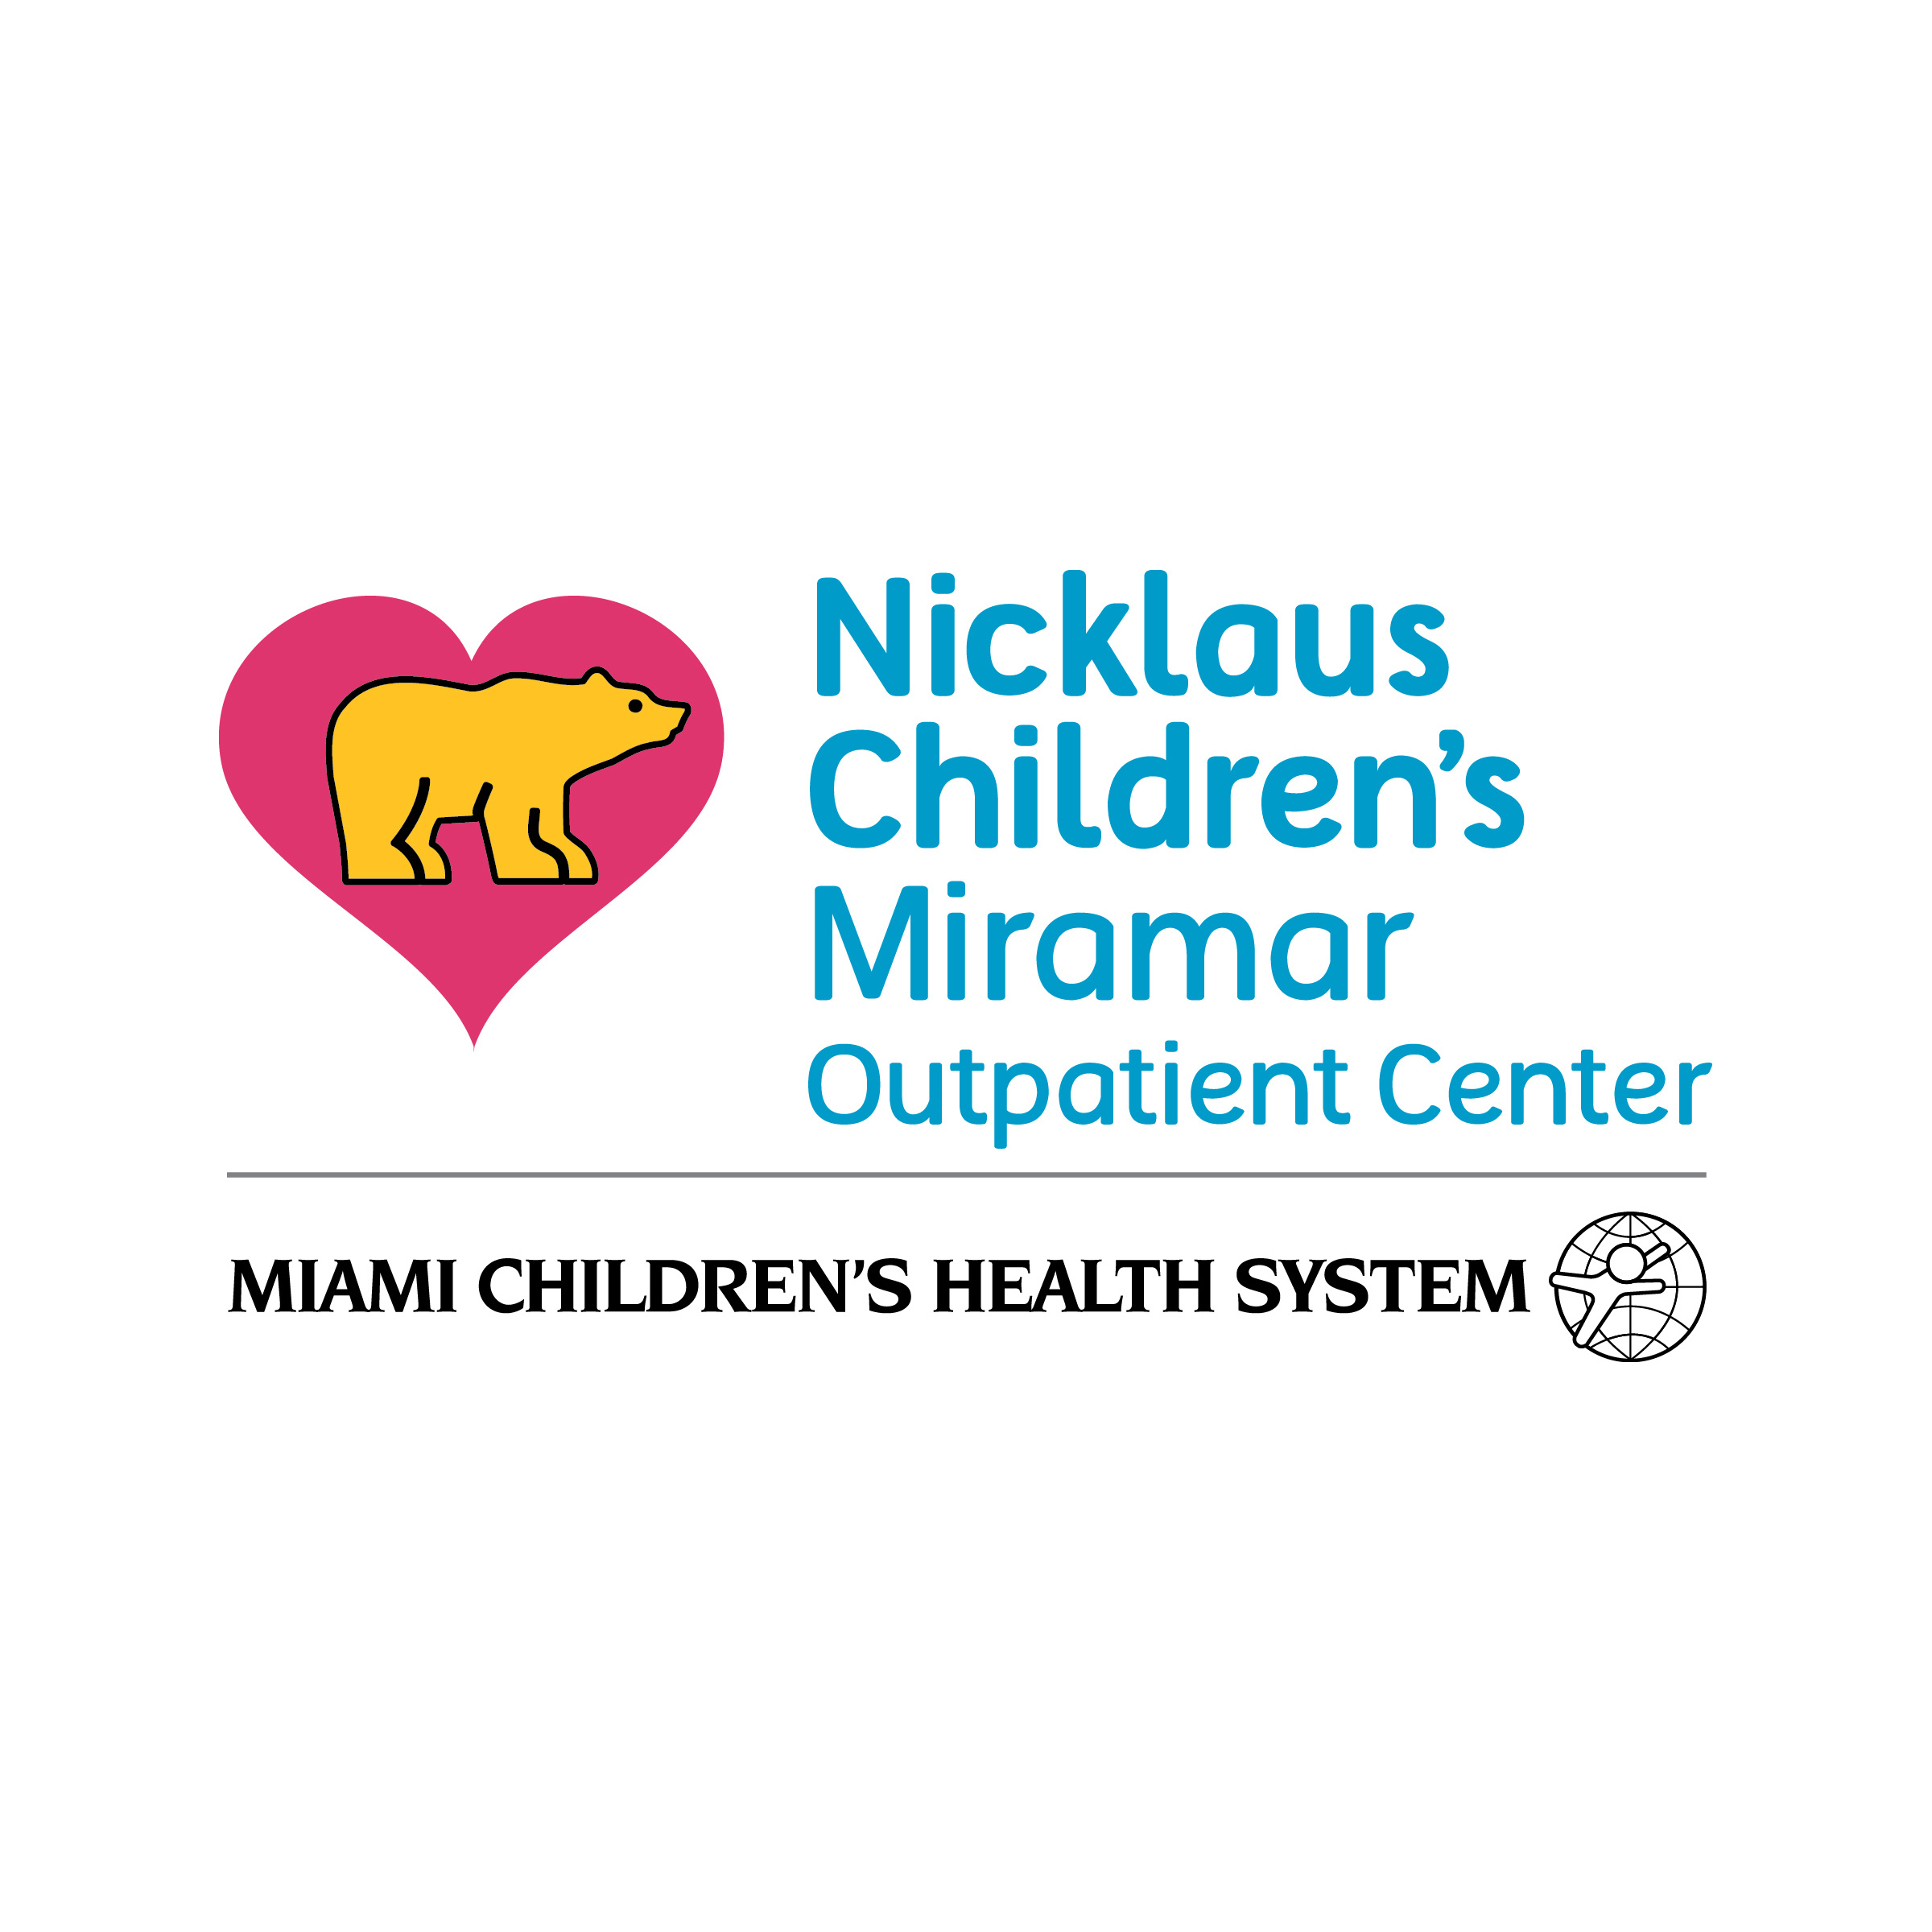 Nicklaus Children's Miramar Outpatient Center